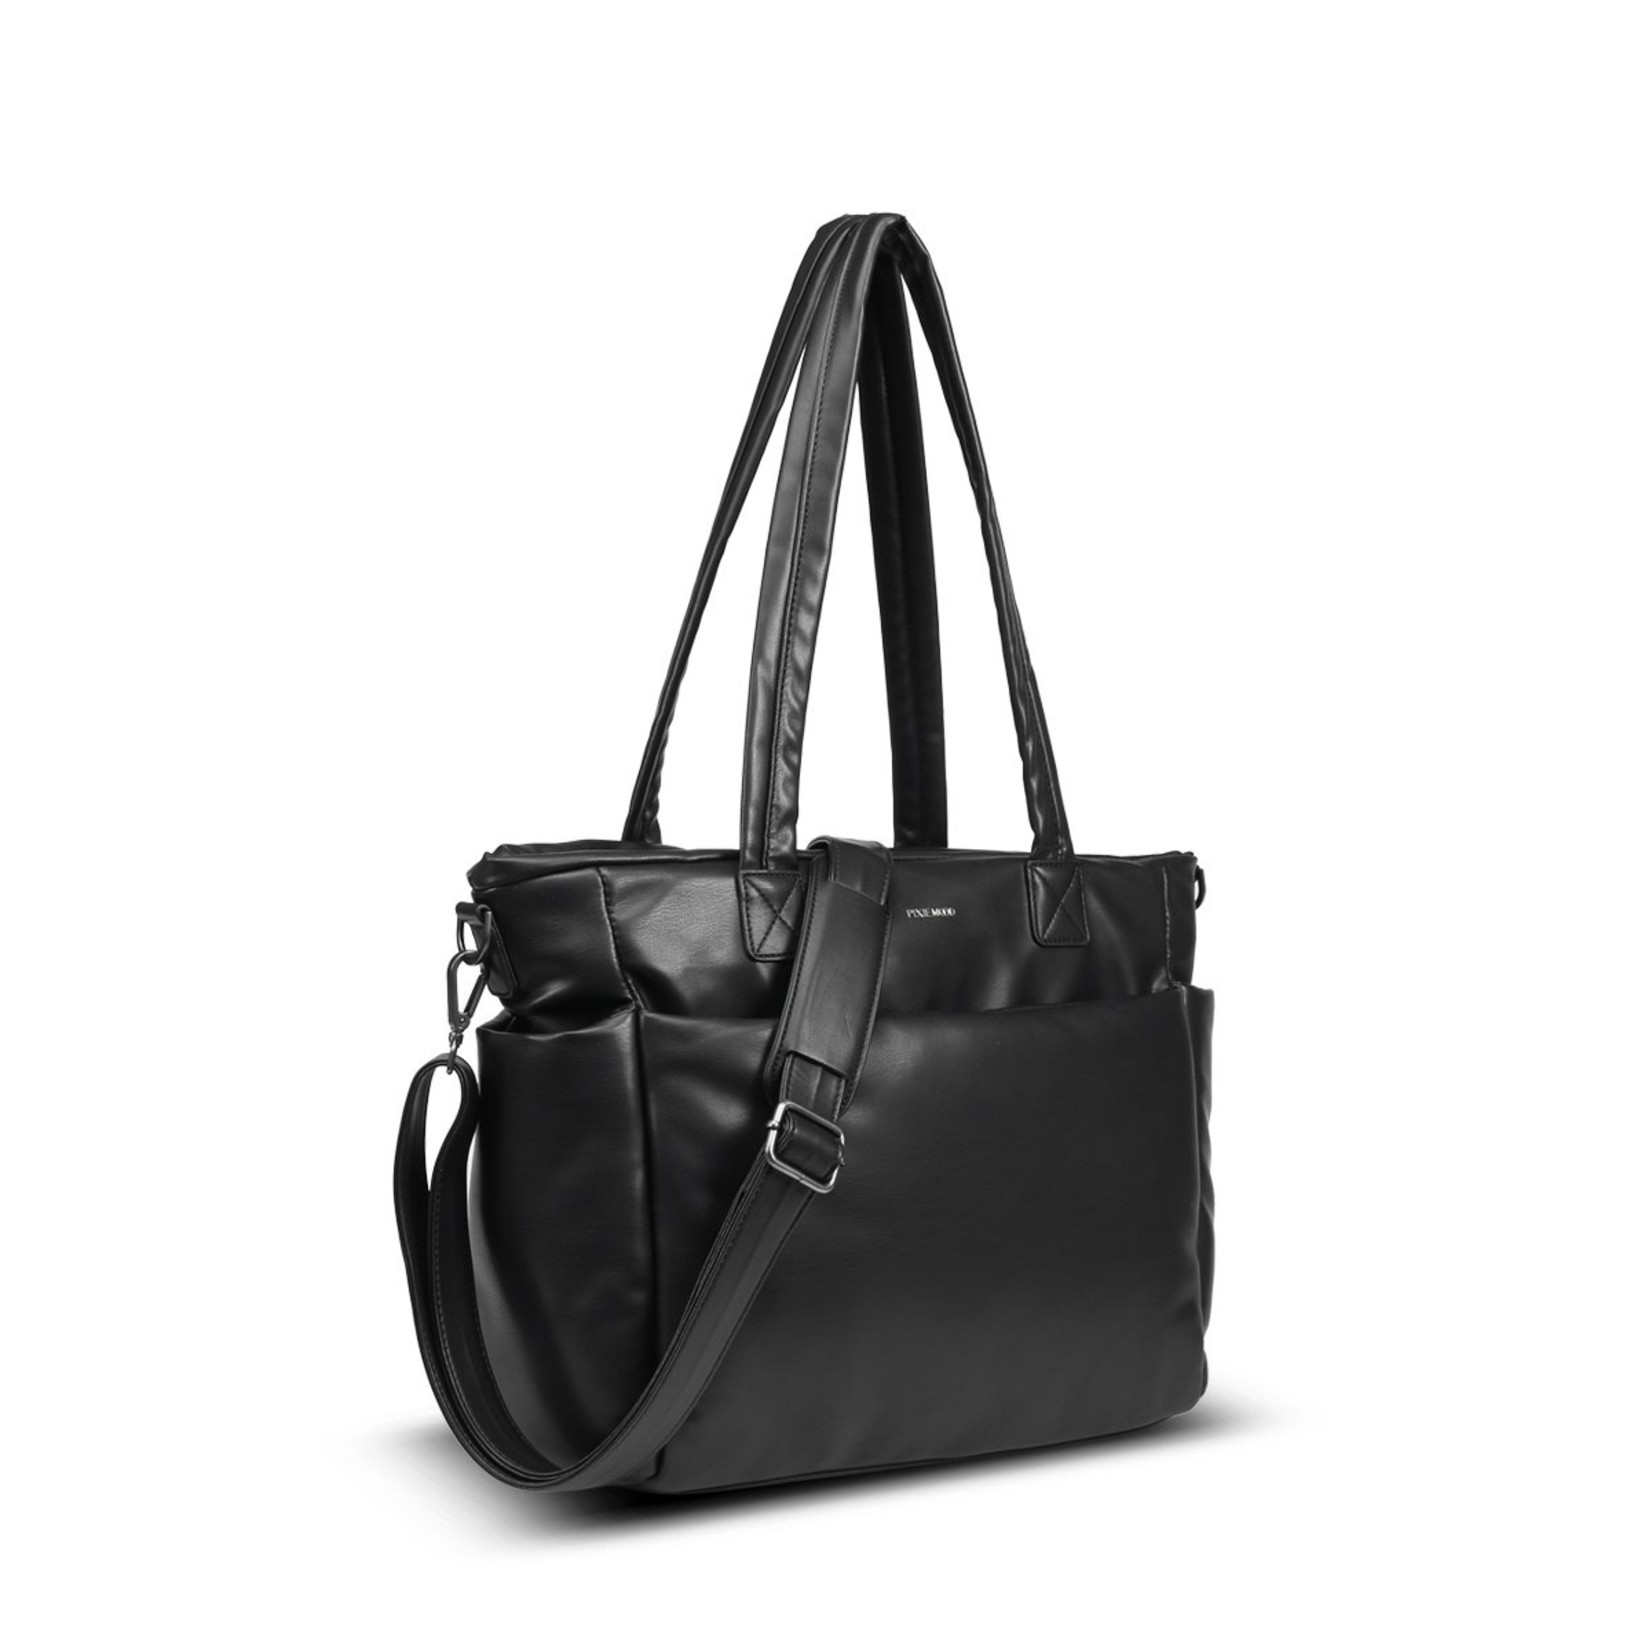 Pixie Mood Bubbly Tote